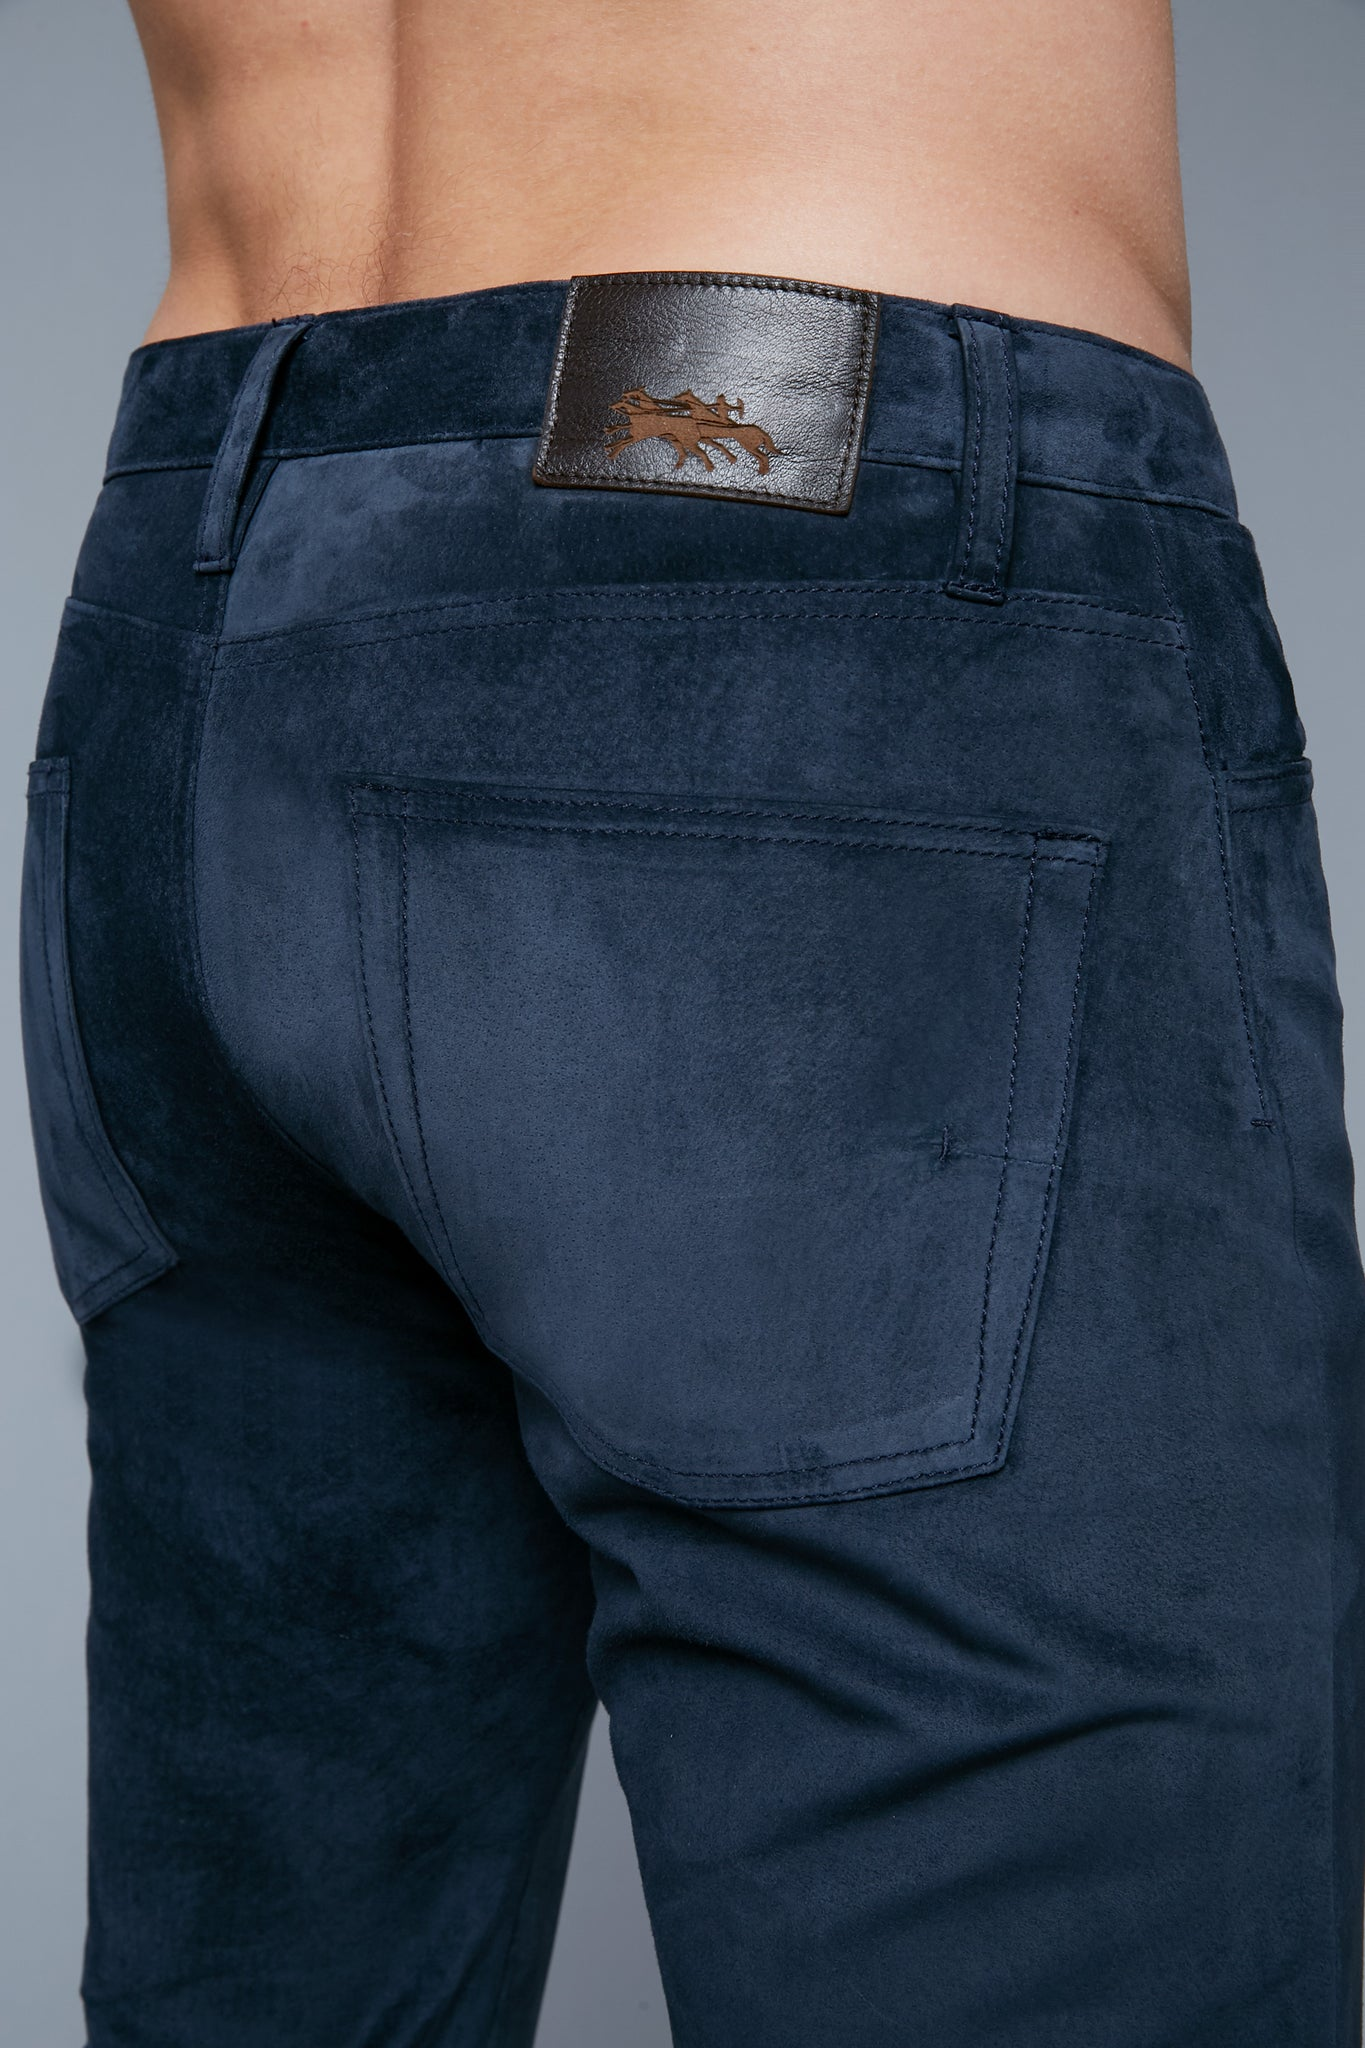 Detail View: Model Hans Weiner wearing Suede 5 Pocket Pants